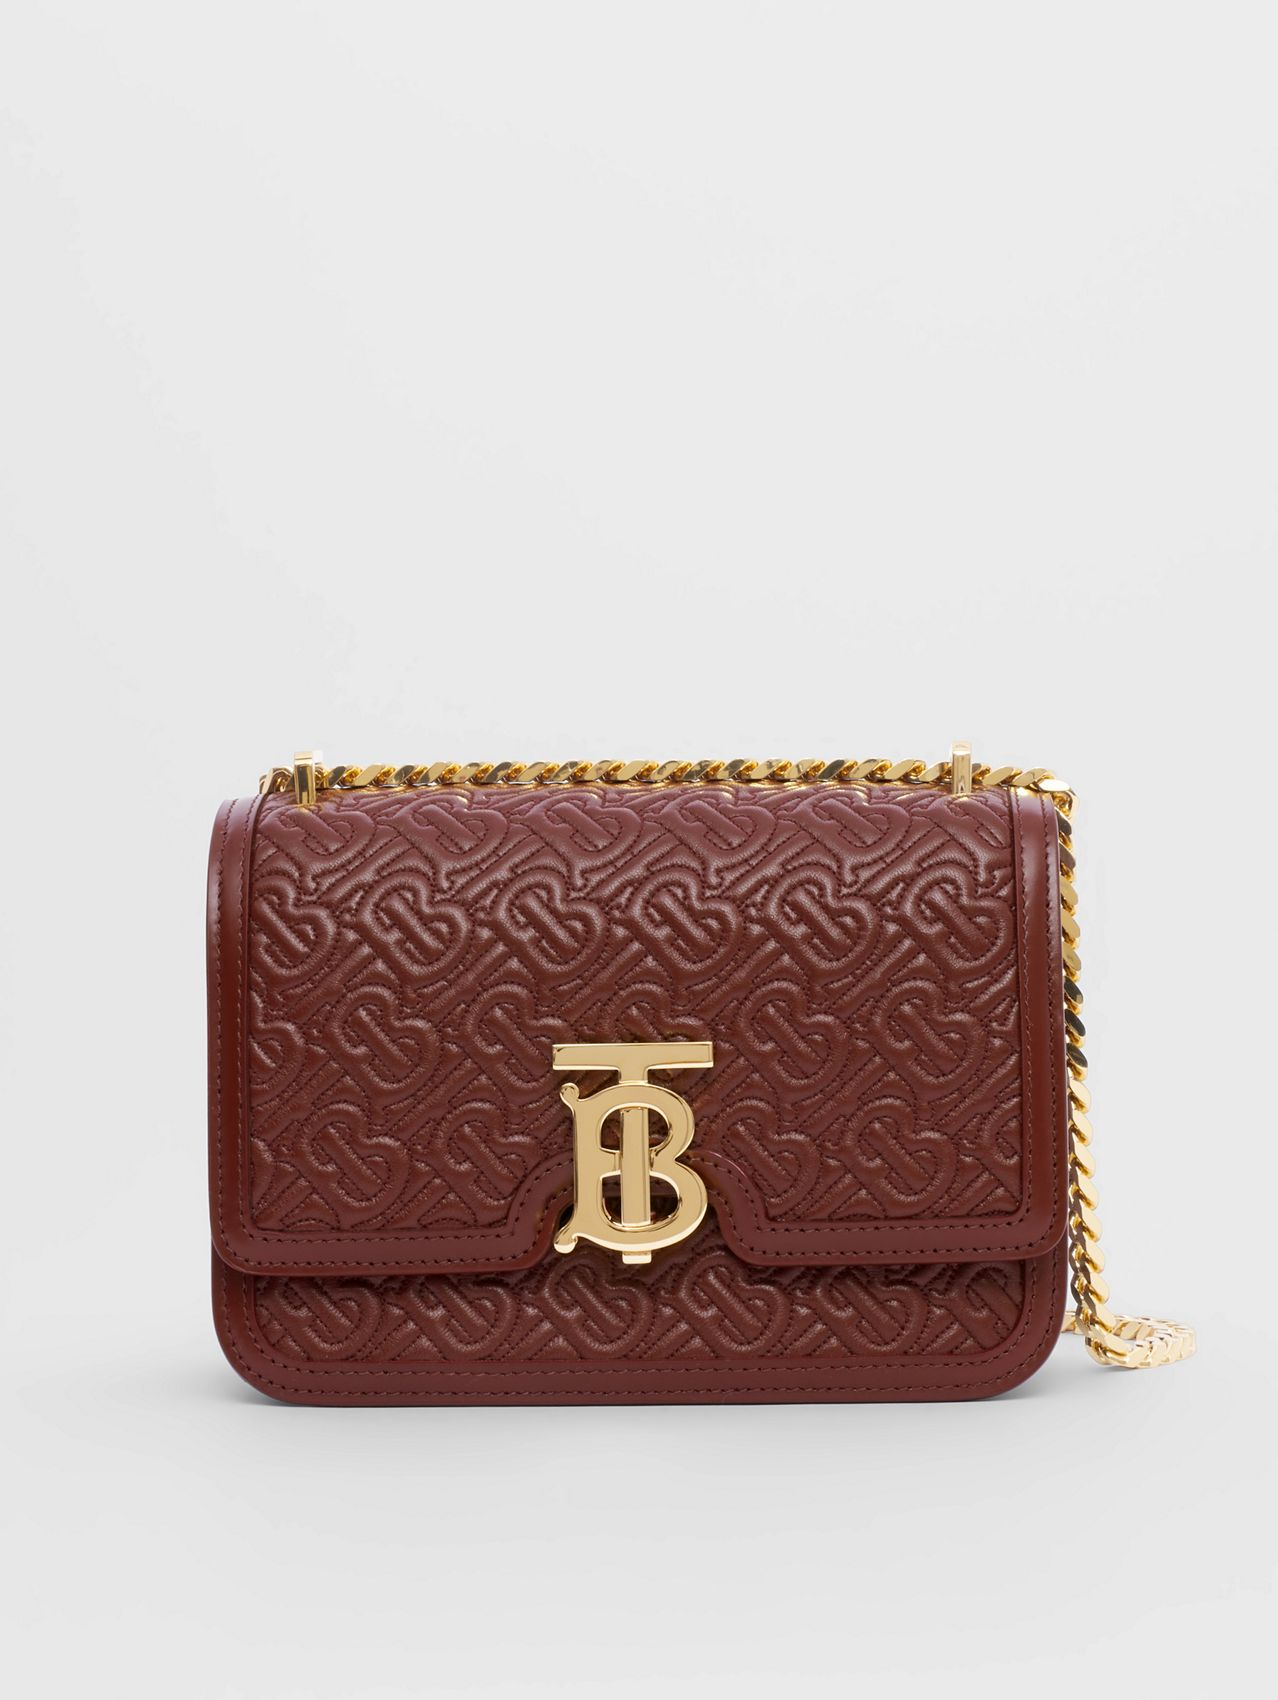 Small Quilted Monogram Lambskin TB Bag in Oxblood